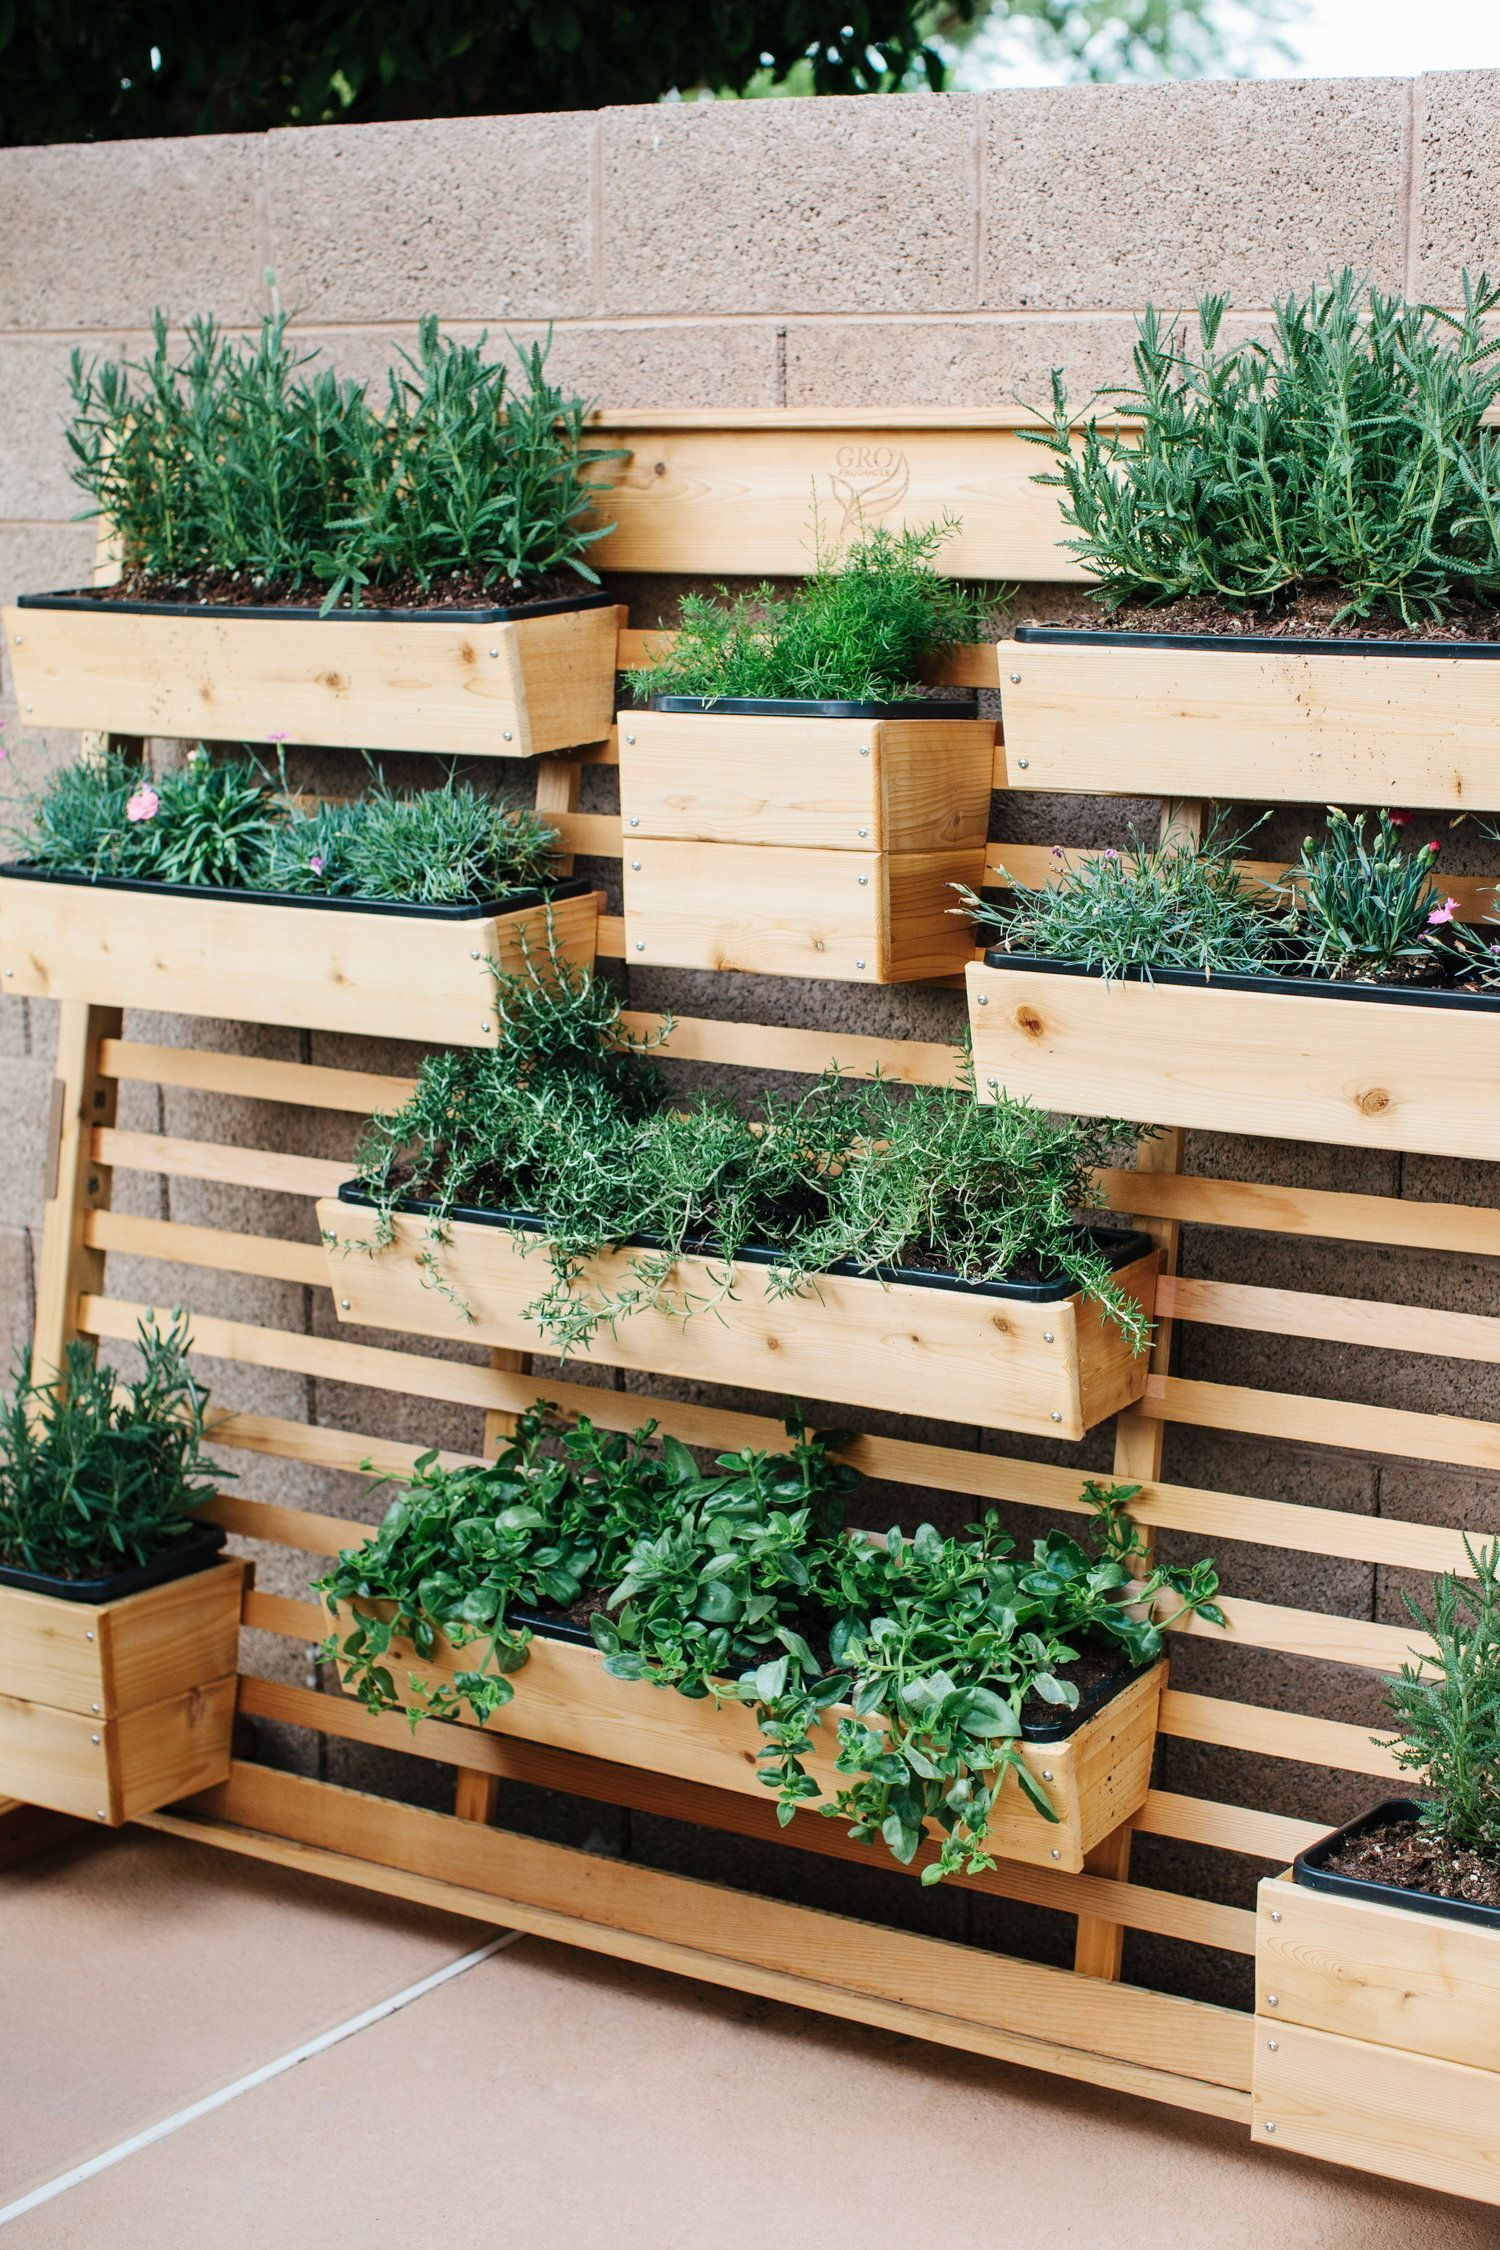 Arizona Outdoor Entertaining Modern Yard Pinterest Backyard in 10 Patio Herb Garden Ideas, Most Brilliant and Attractive     #PatioGarden #PatioGardenideas #HowtopatioGarden     Fresh herbs from the bed simply belong to the garden. We help you plan and create your herb garden.    If you want to take over the planning yourself, you can design The Shape of the herb garden completely individually, depending on your personal preference and a... #Attractive #Br